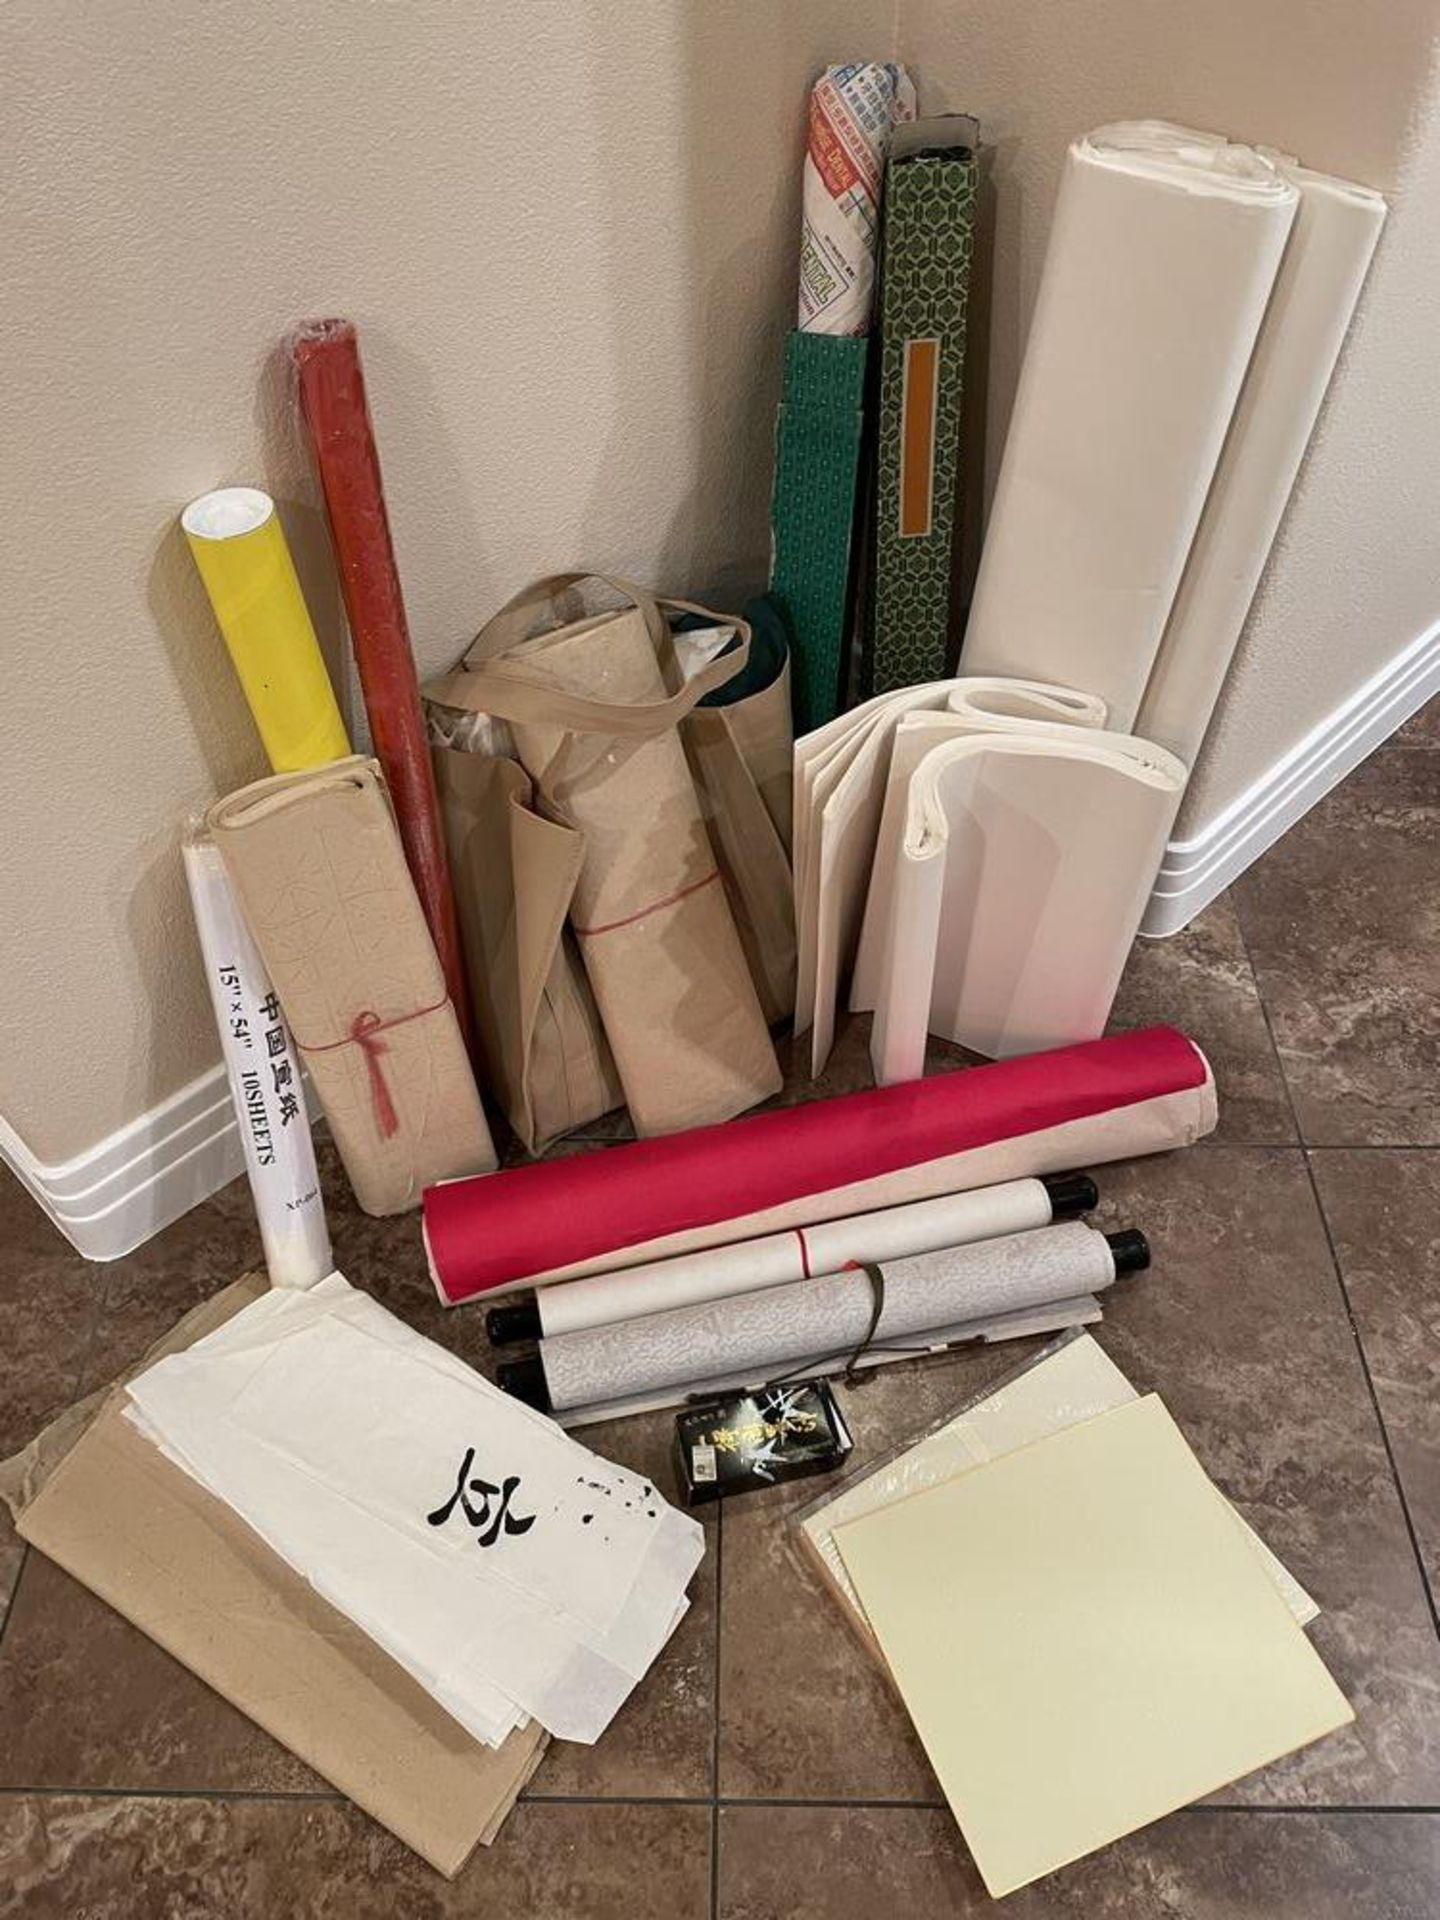 Large collection of Calligraphy Paper, Scrolls, Ink Etc - Image 6 of 7